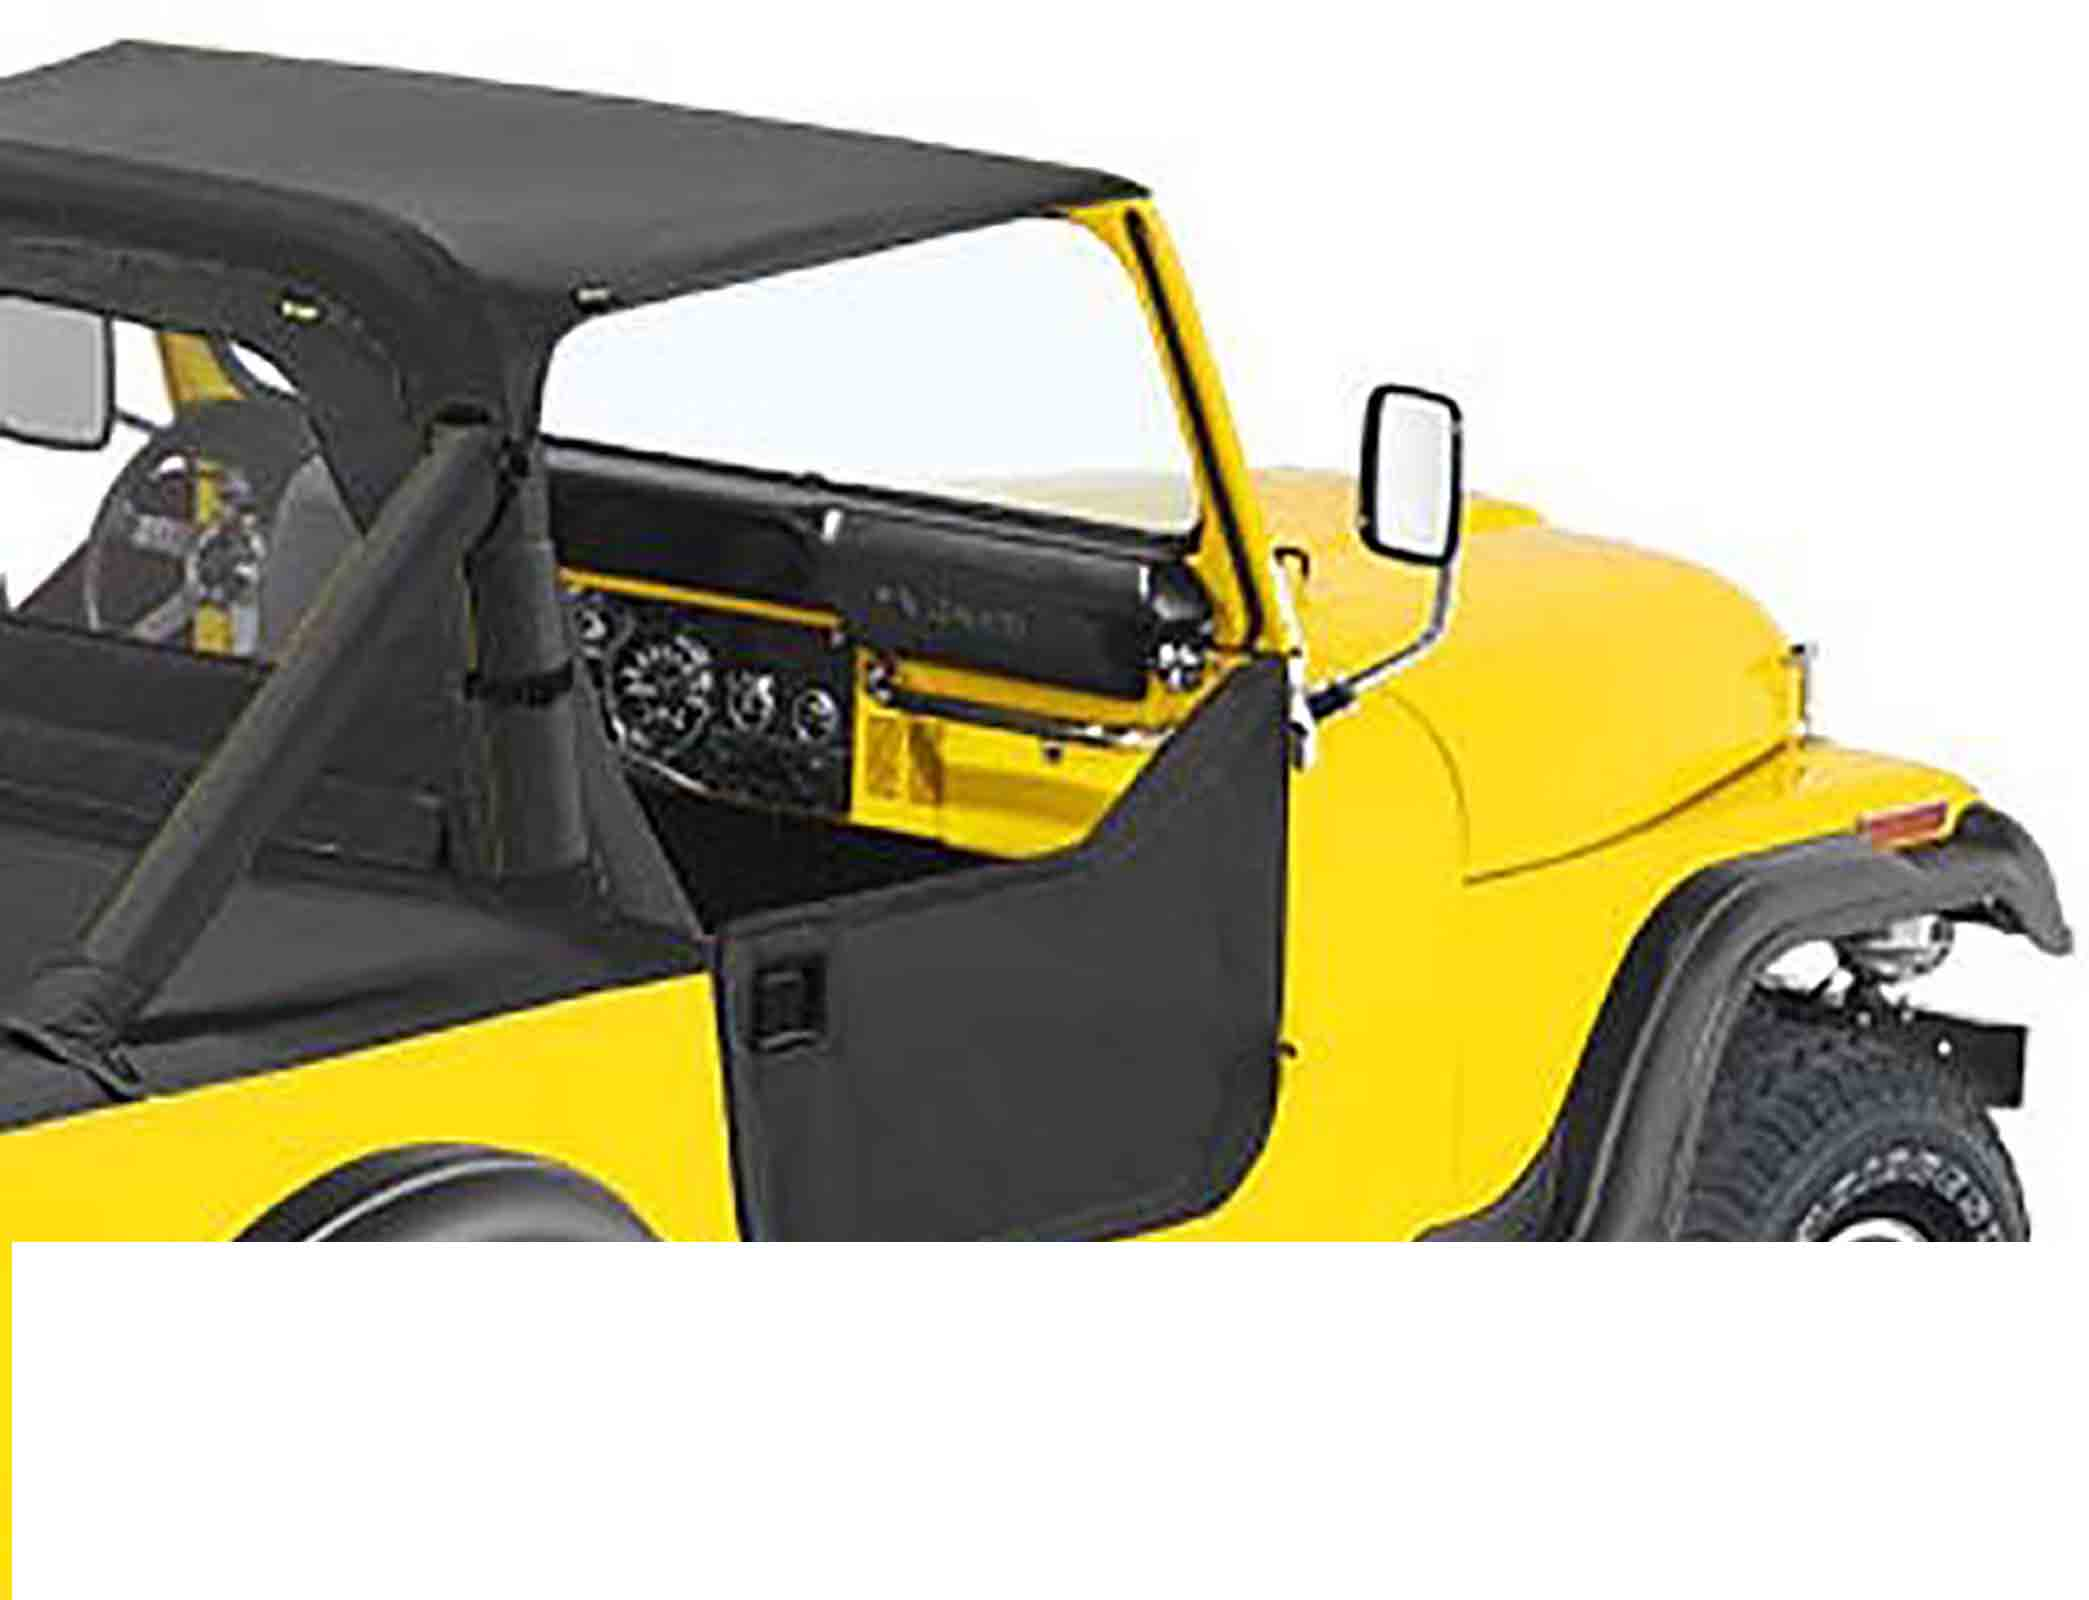 Mezzeporte jeep cj7 76 80 colori: black crush ricambi jeep